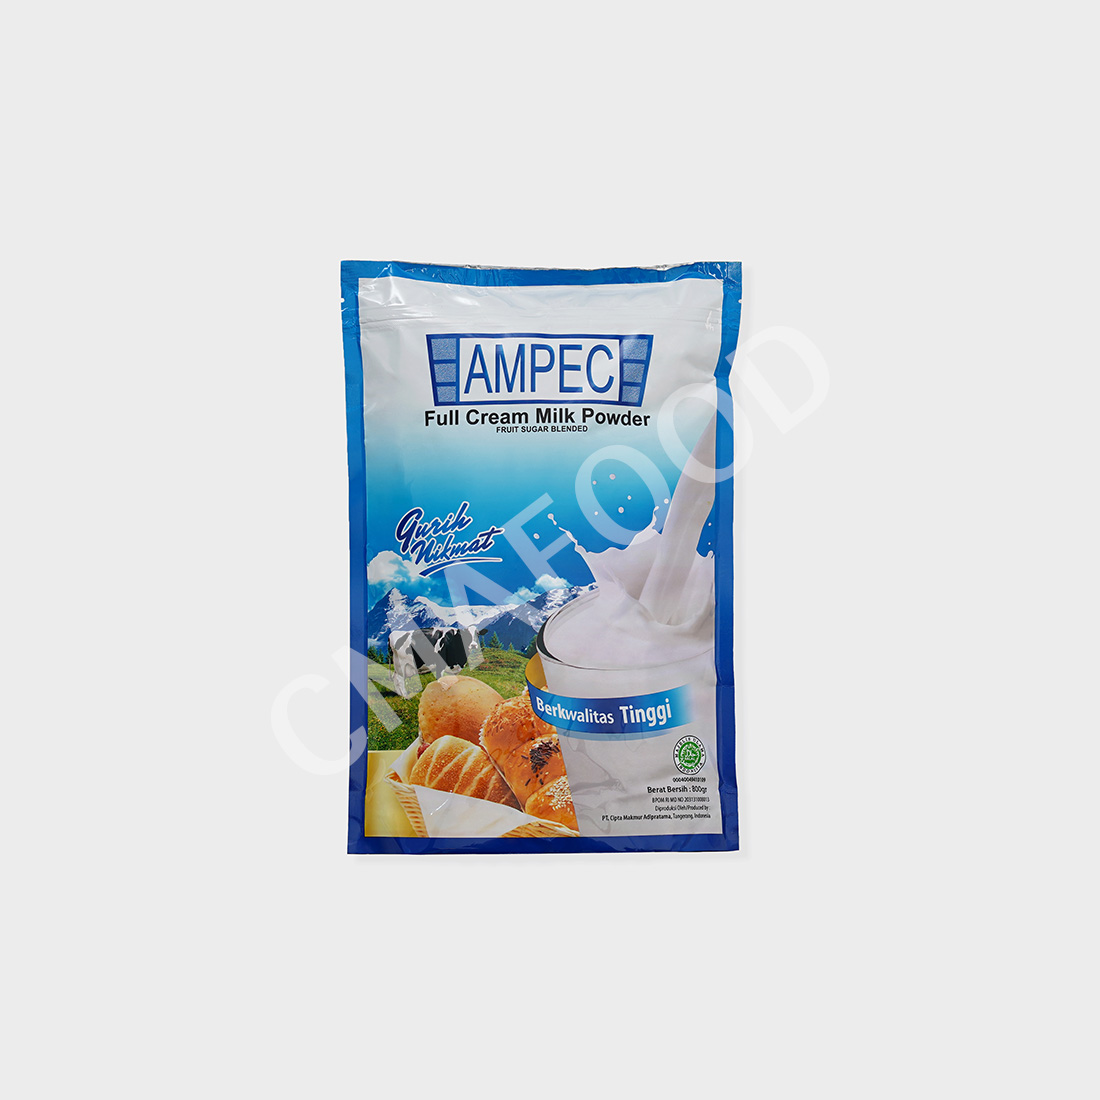 Ampec Full Cream Milk Powder Photo 0